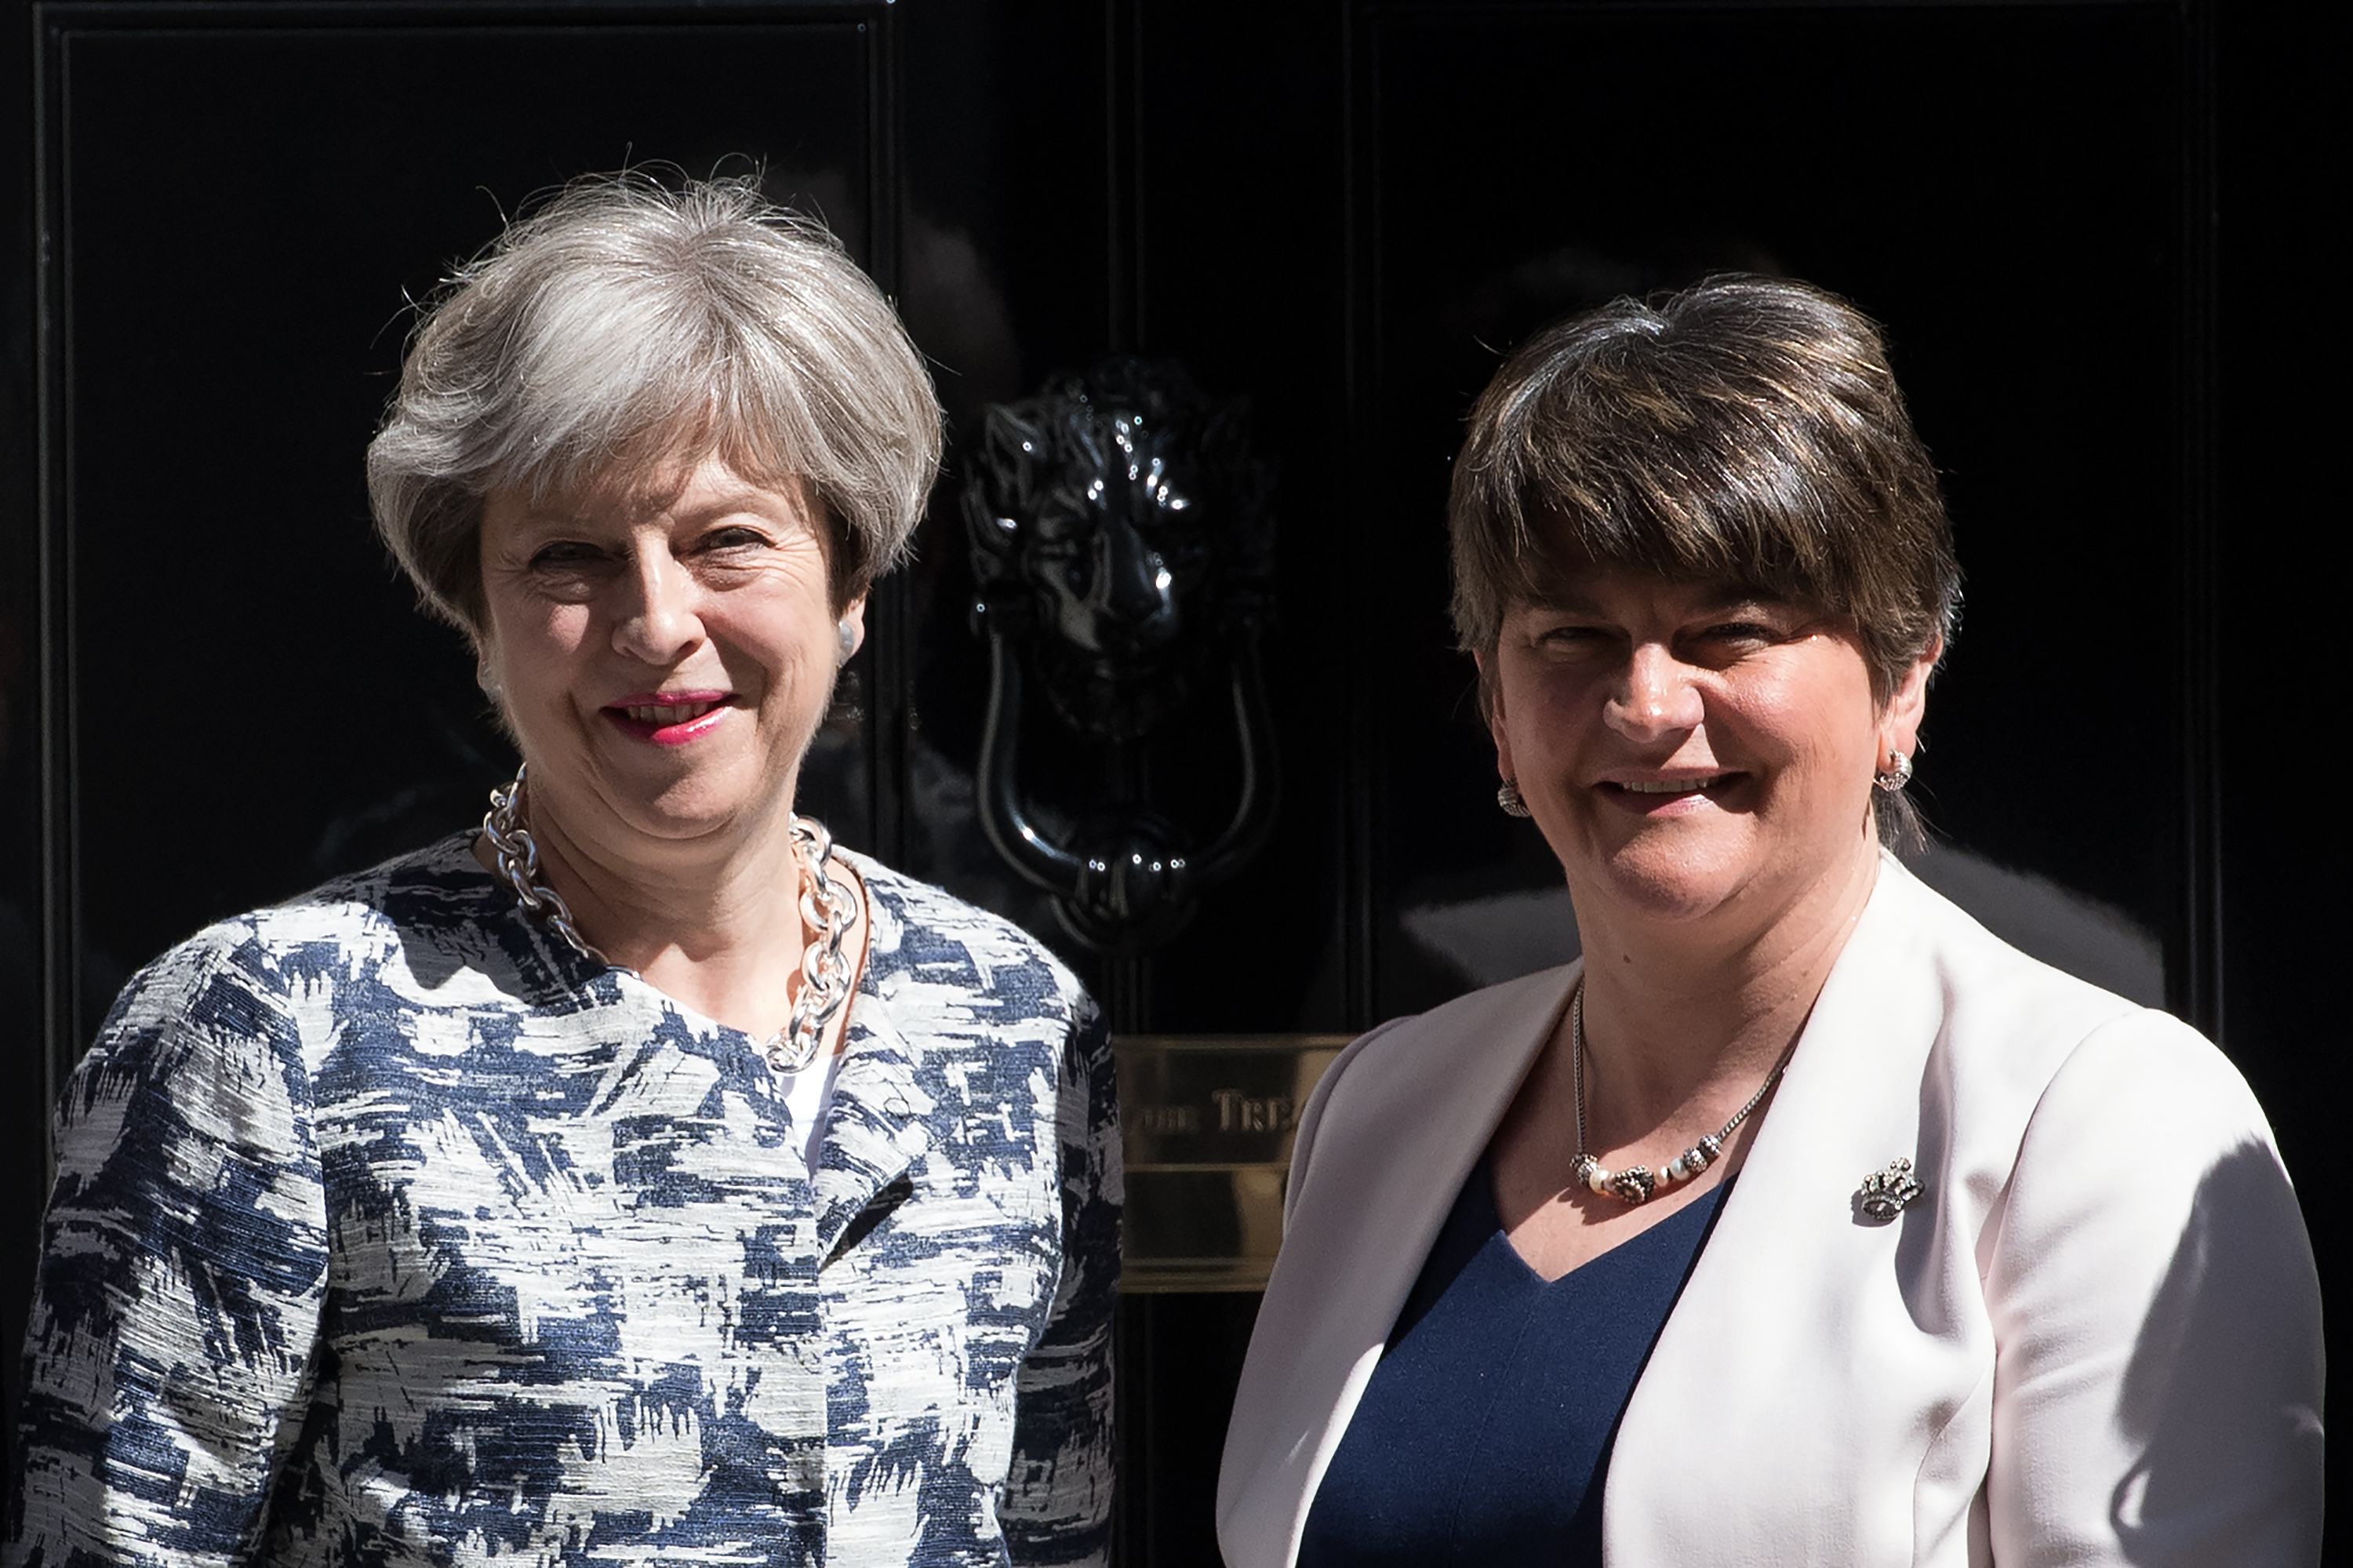 Britain's Prime Minister, Theresa May (L), greets Arlene Foster, the leader of Northern Ireland's Democratic Unionist Party in Downing Street on June 26, 2017 in London, England.